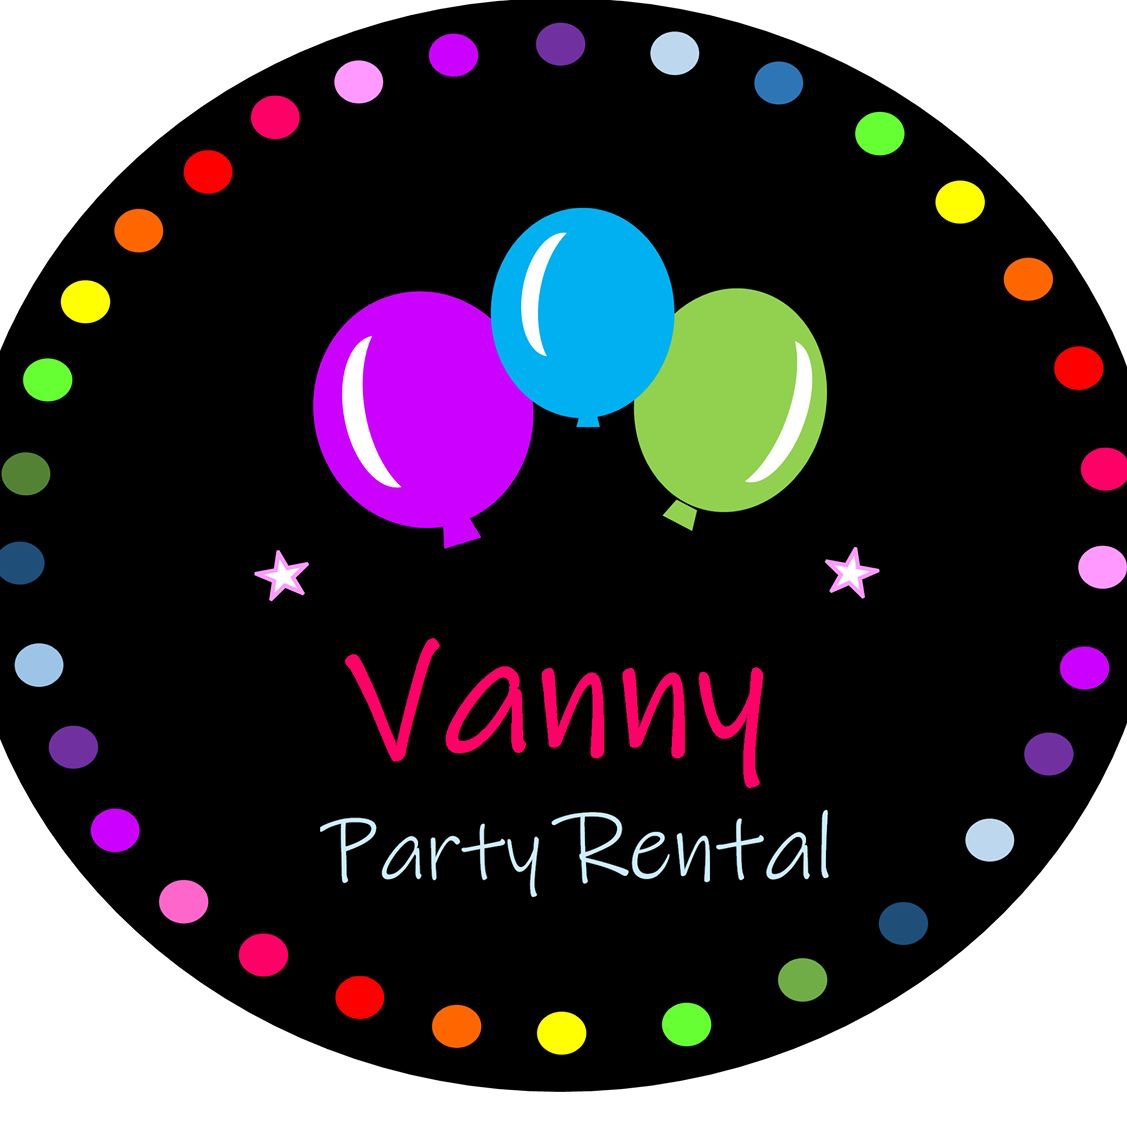 VANNY PARTY RENTAL image